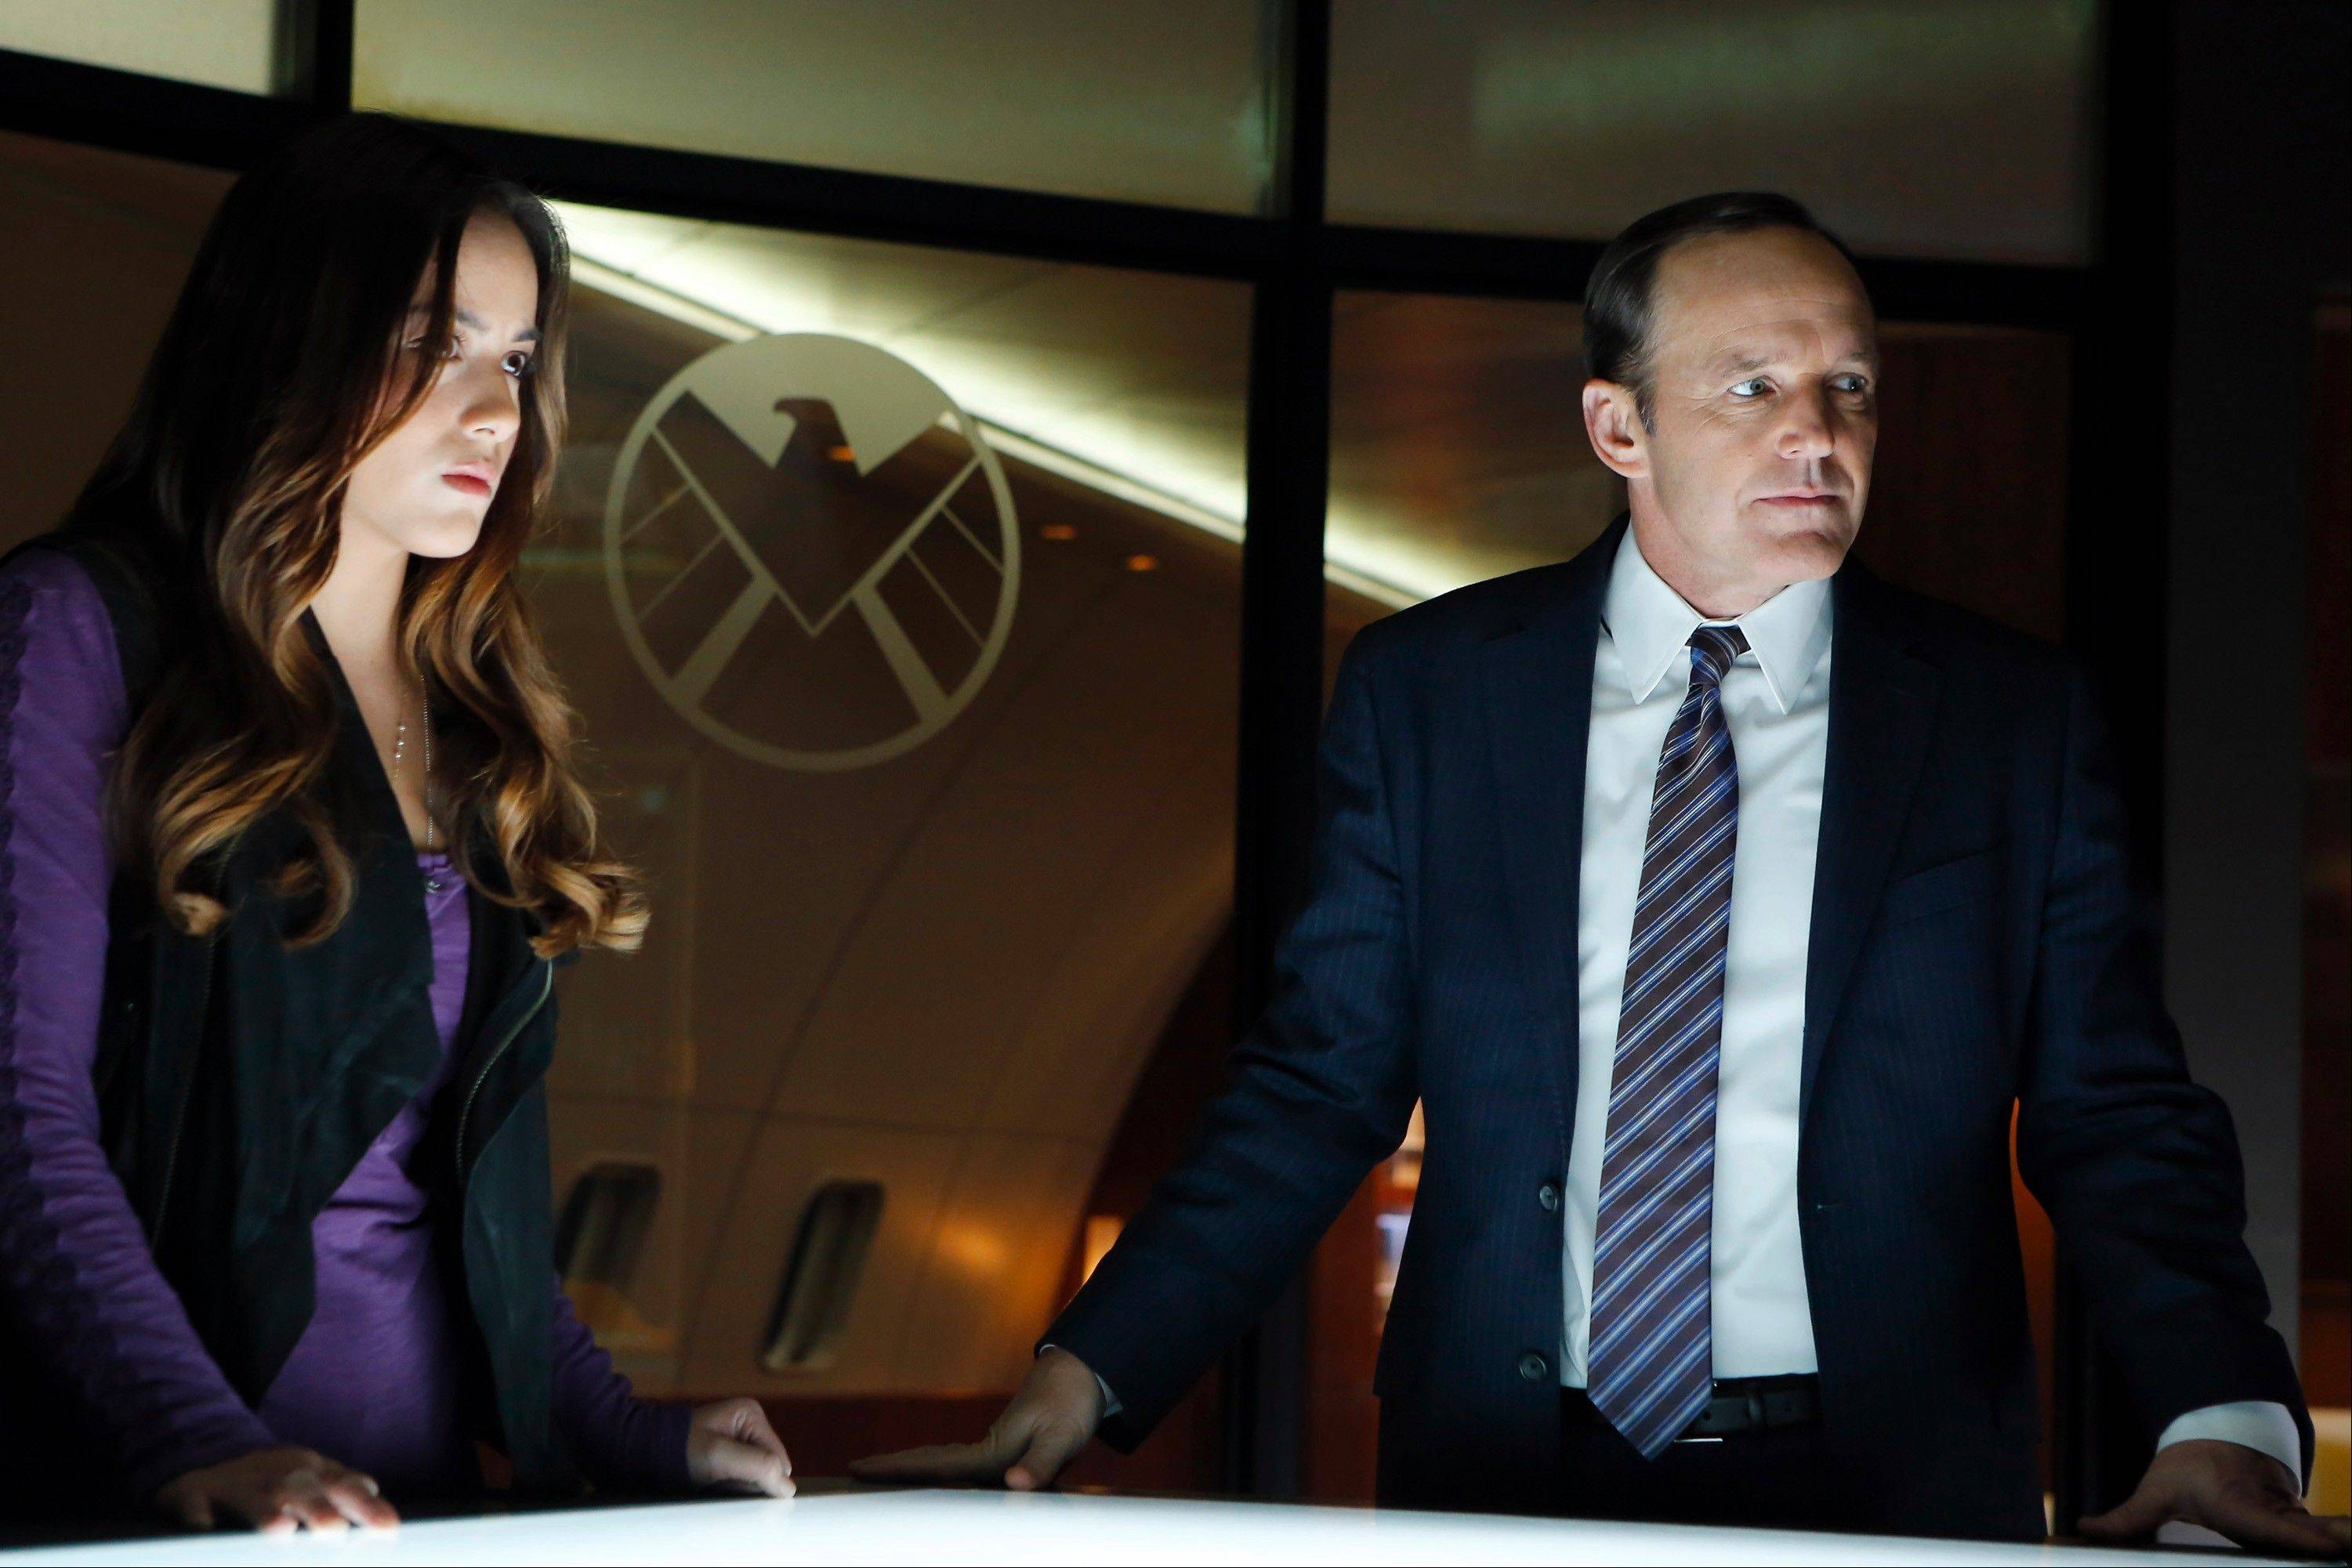 Chloe Bennet and Clark Gregg star in the pilot of Joss Whedon�s �Marvel�s Agents of S.H.I.E.L.D.� premiering on ABC.